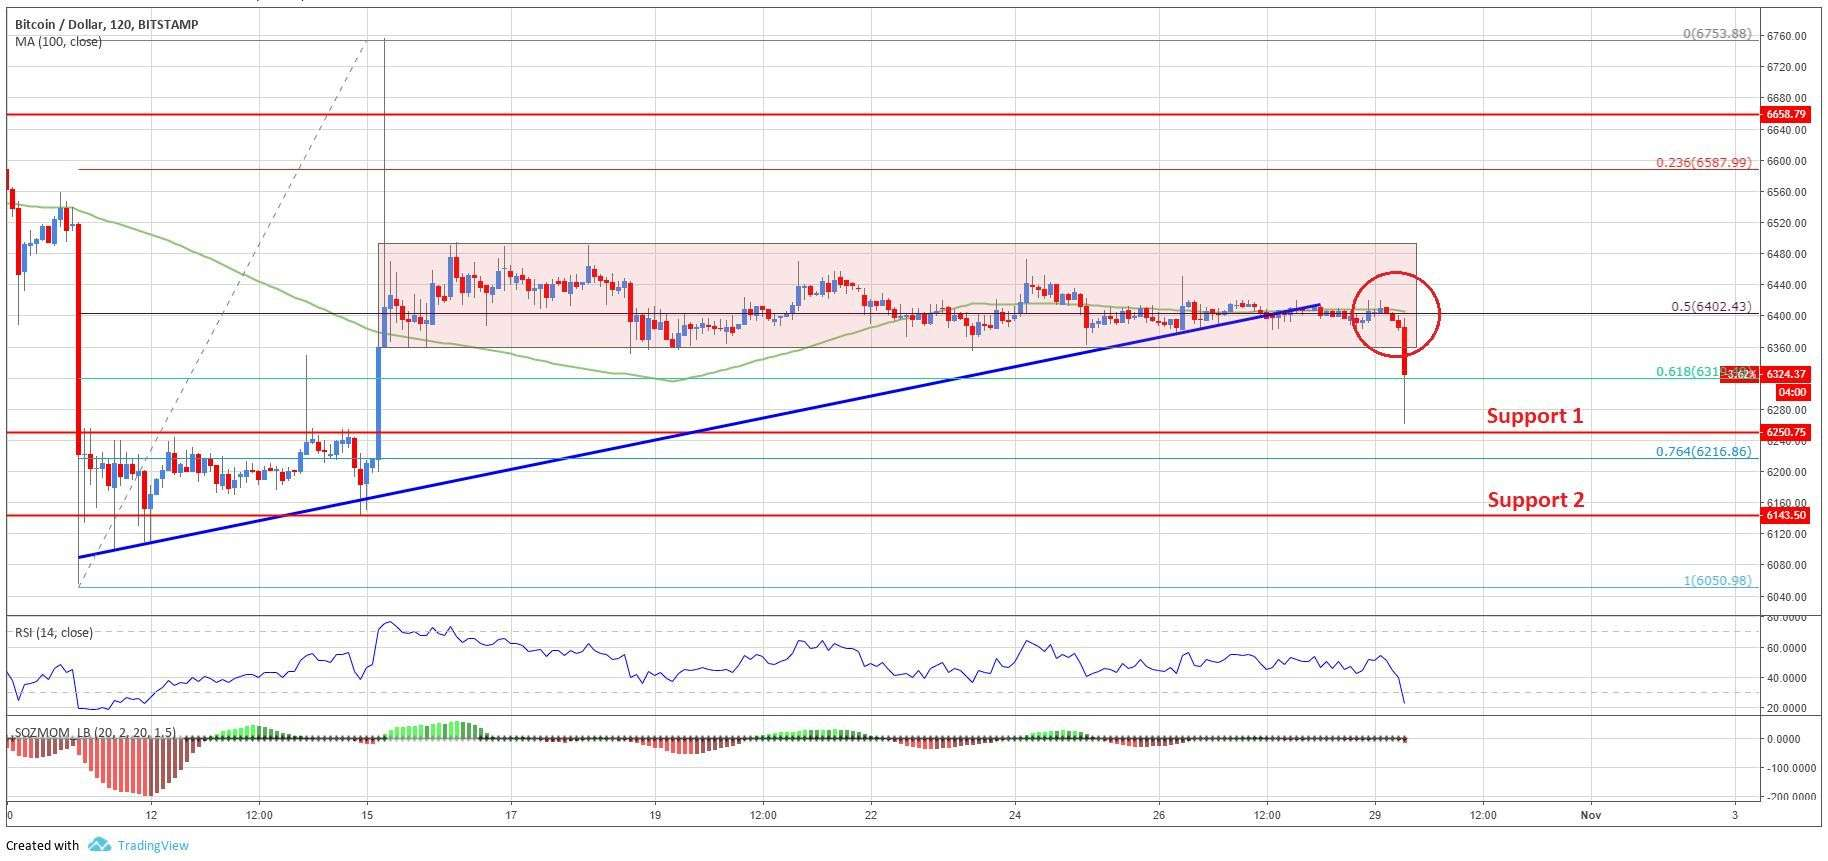 Coingape: Bitcoin Price Analysis: BTC/USD Breaks Key Trend Support